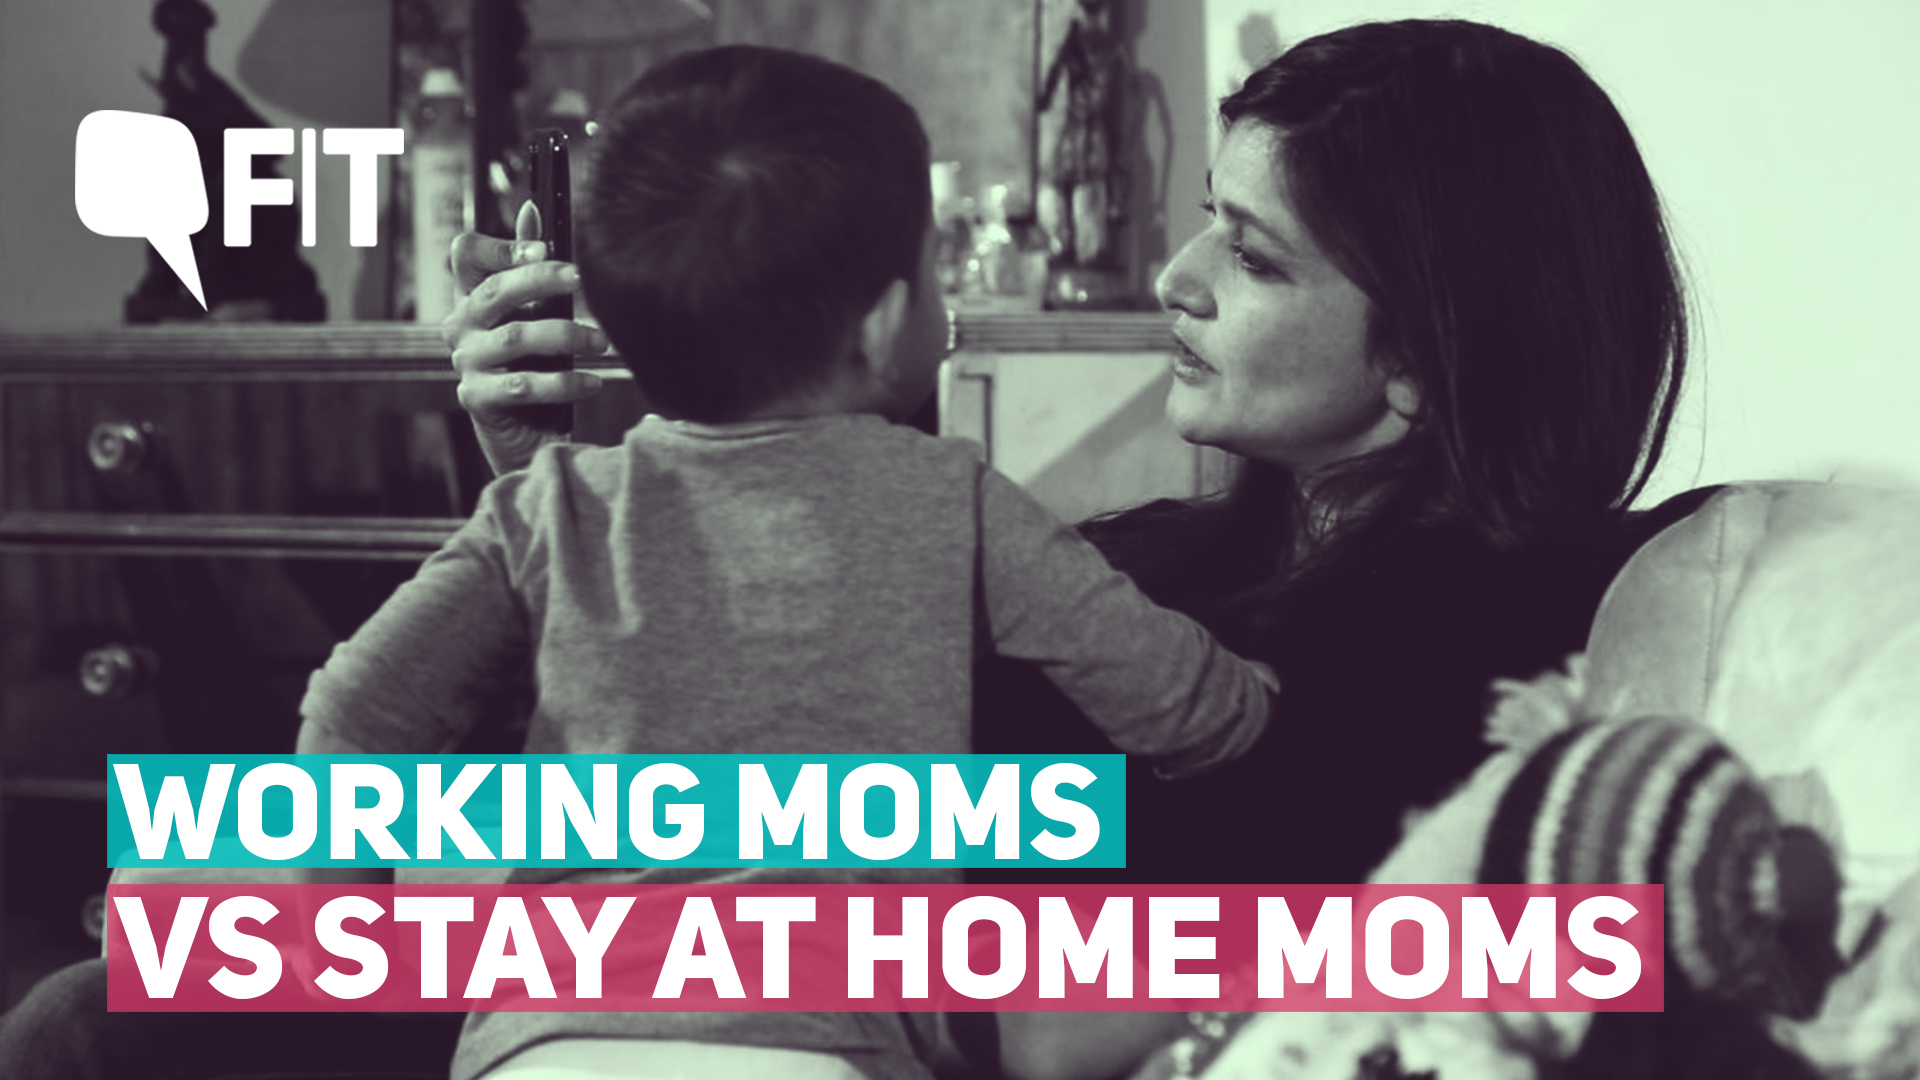 Working Moms Vs Stay At Home Moms- Who Has It Better?